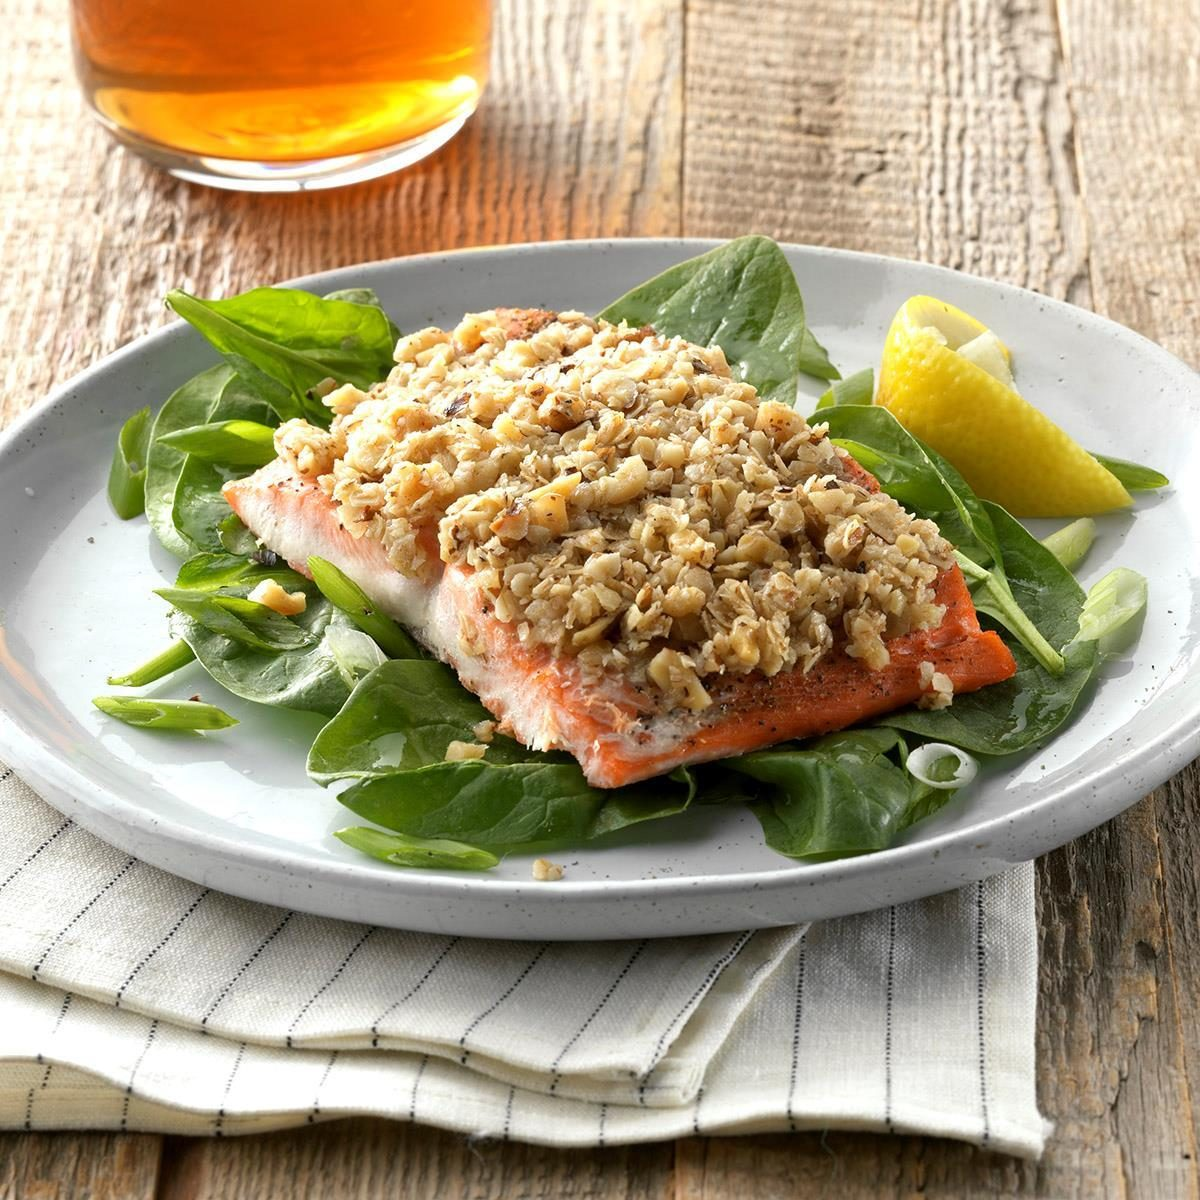 10 Easy Diabetic Dinner Recipes with 10 Ingredients or Less